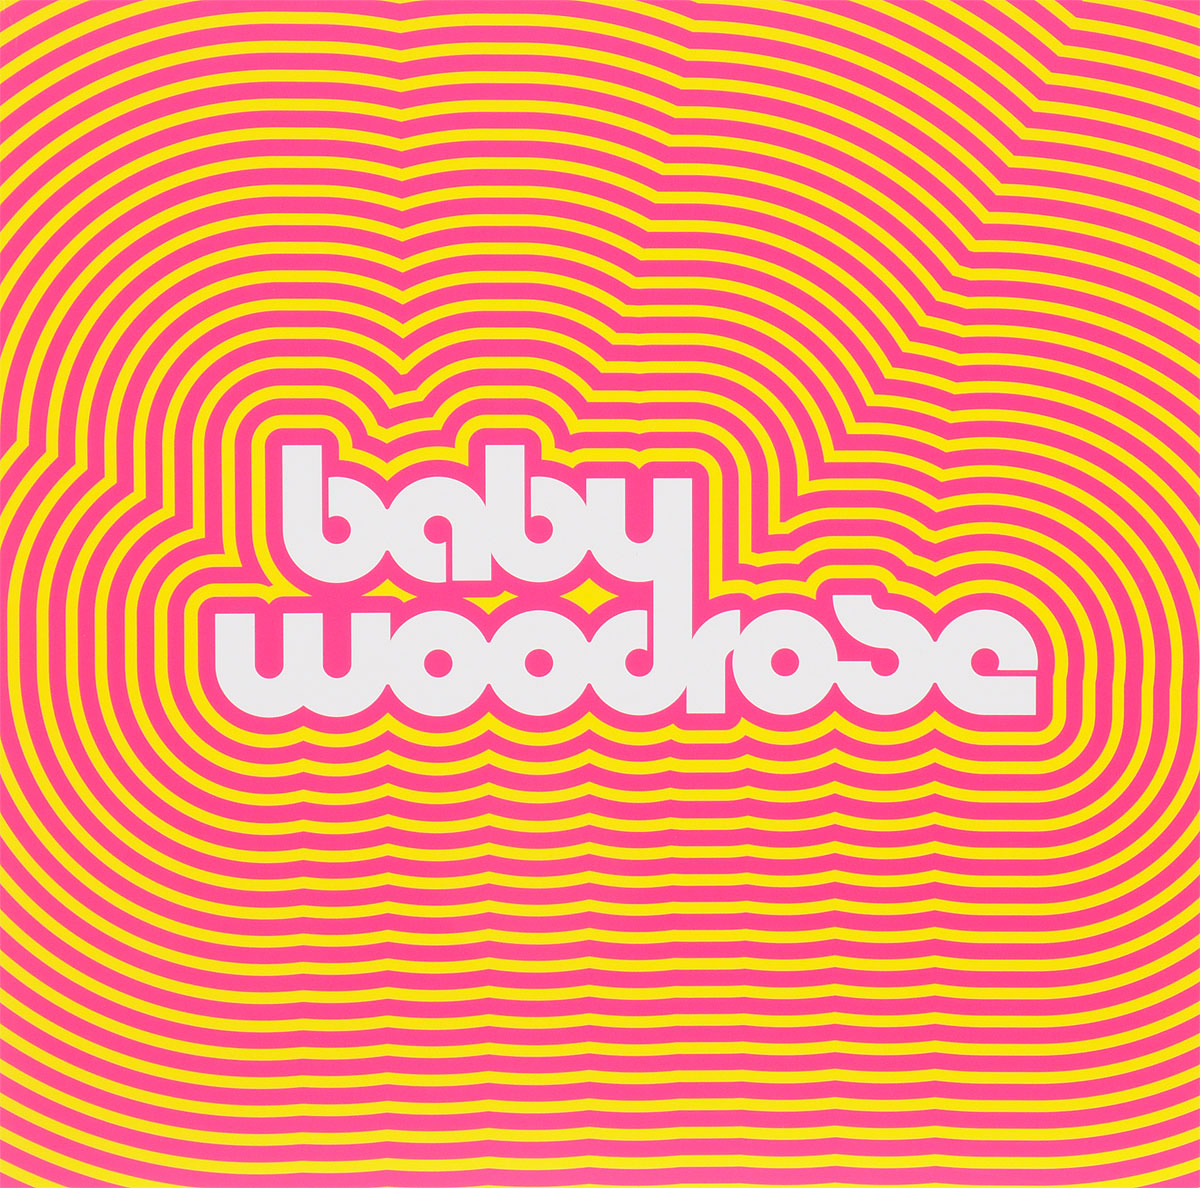 Baby Woodrose (Purple Vinyl) (LP) baby woodrose purple vinyl lp